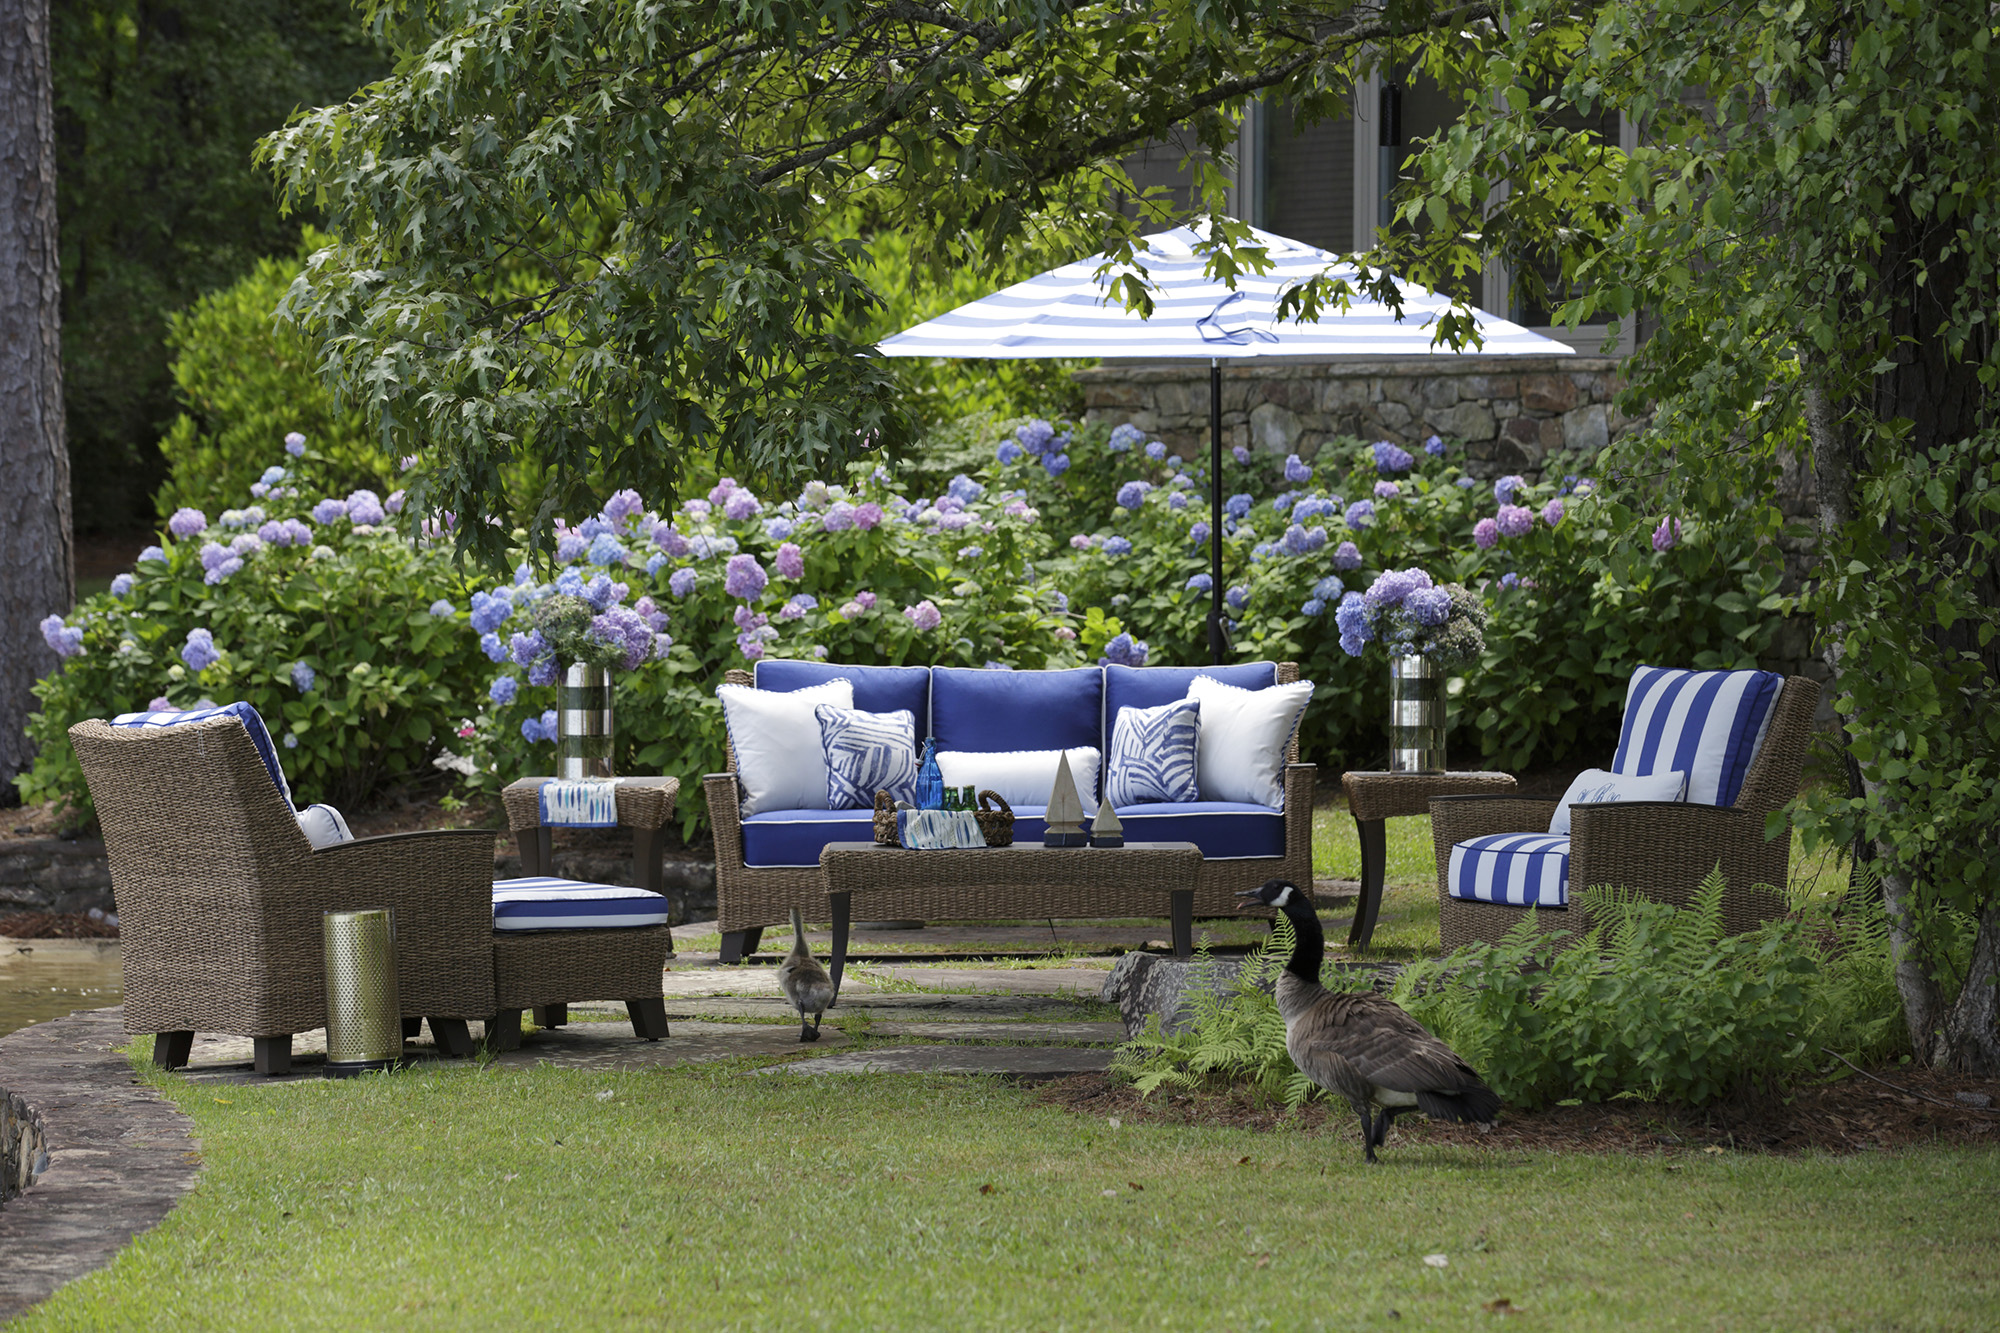 Top outdoor fabric trends for 2016 jacquard damask and for Best material for outdoor furniture